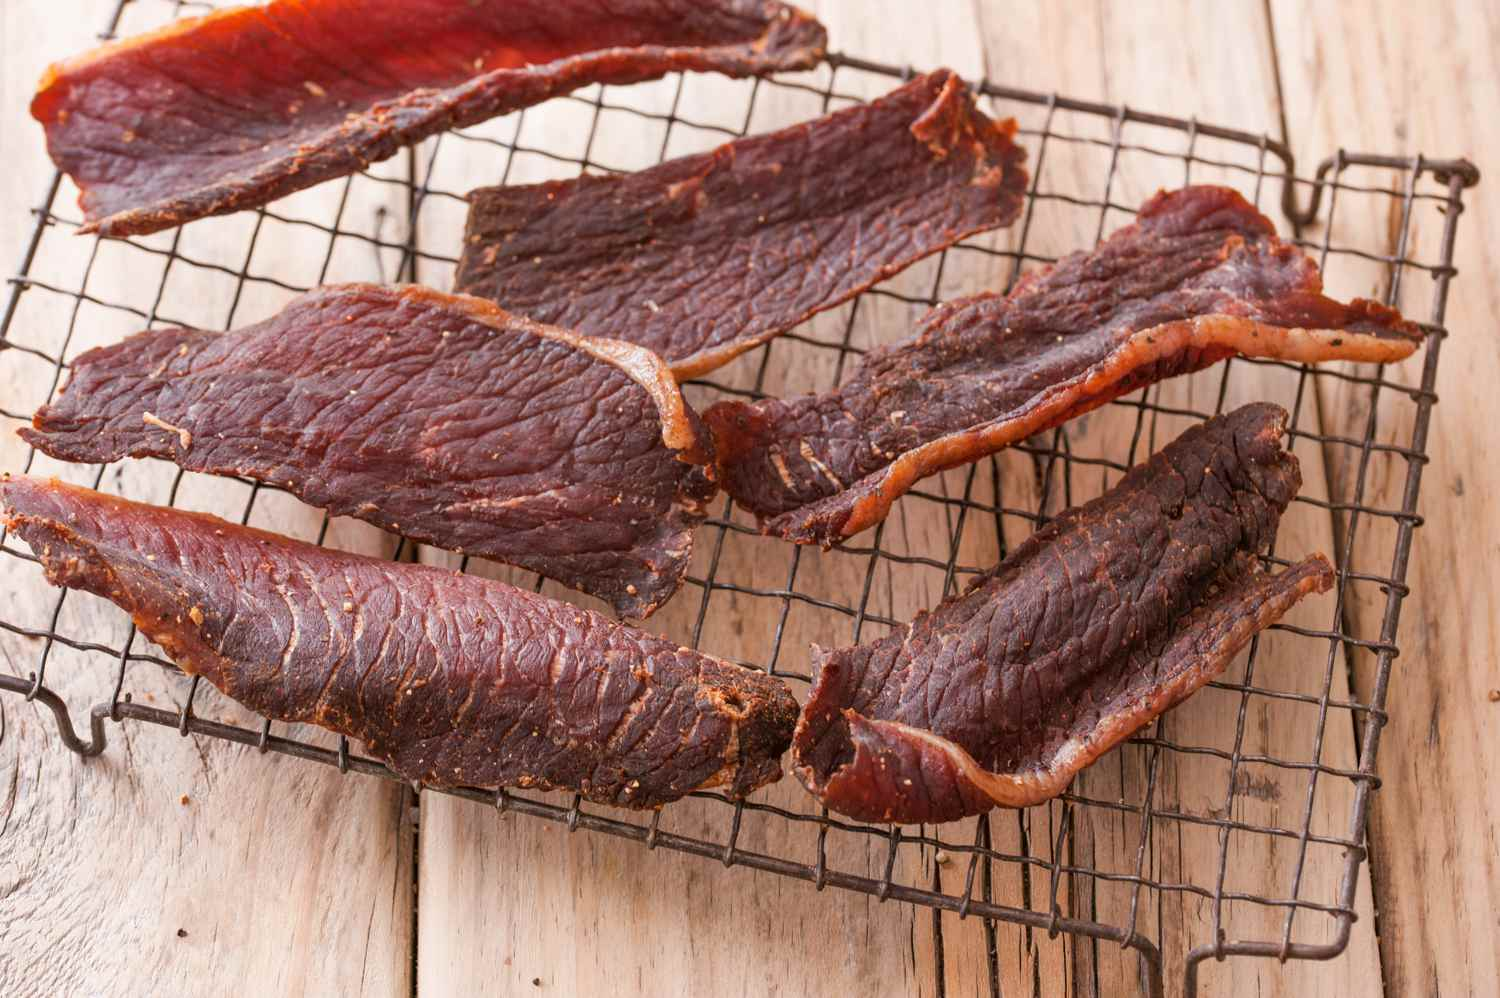 Heat beef strips and then air dry